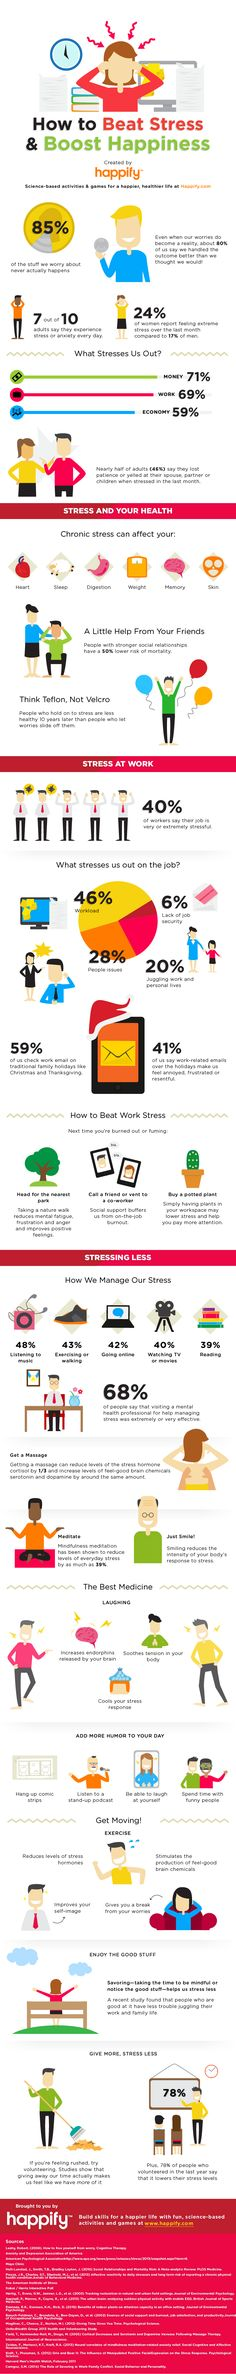 13 Proven Ways To Reduce Stress In Your Life   Read more: http://www.businessinsider.com/13-ways-to-reduce-stress-in-your-life-2014-4#ixzz2znTXep1U